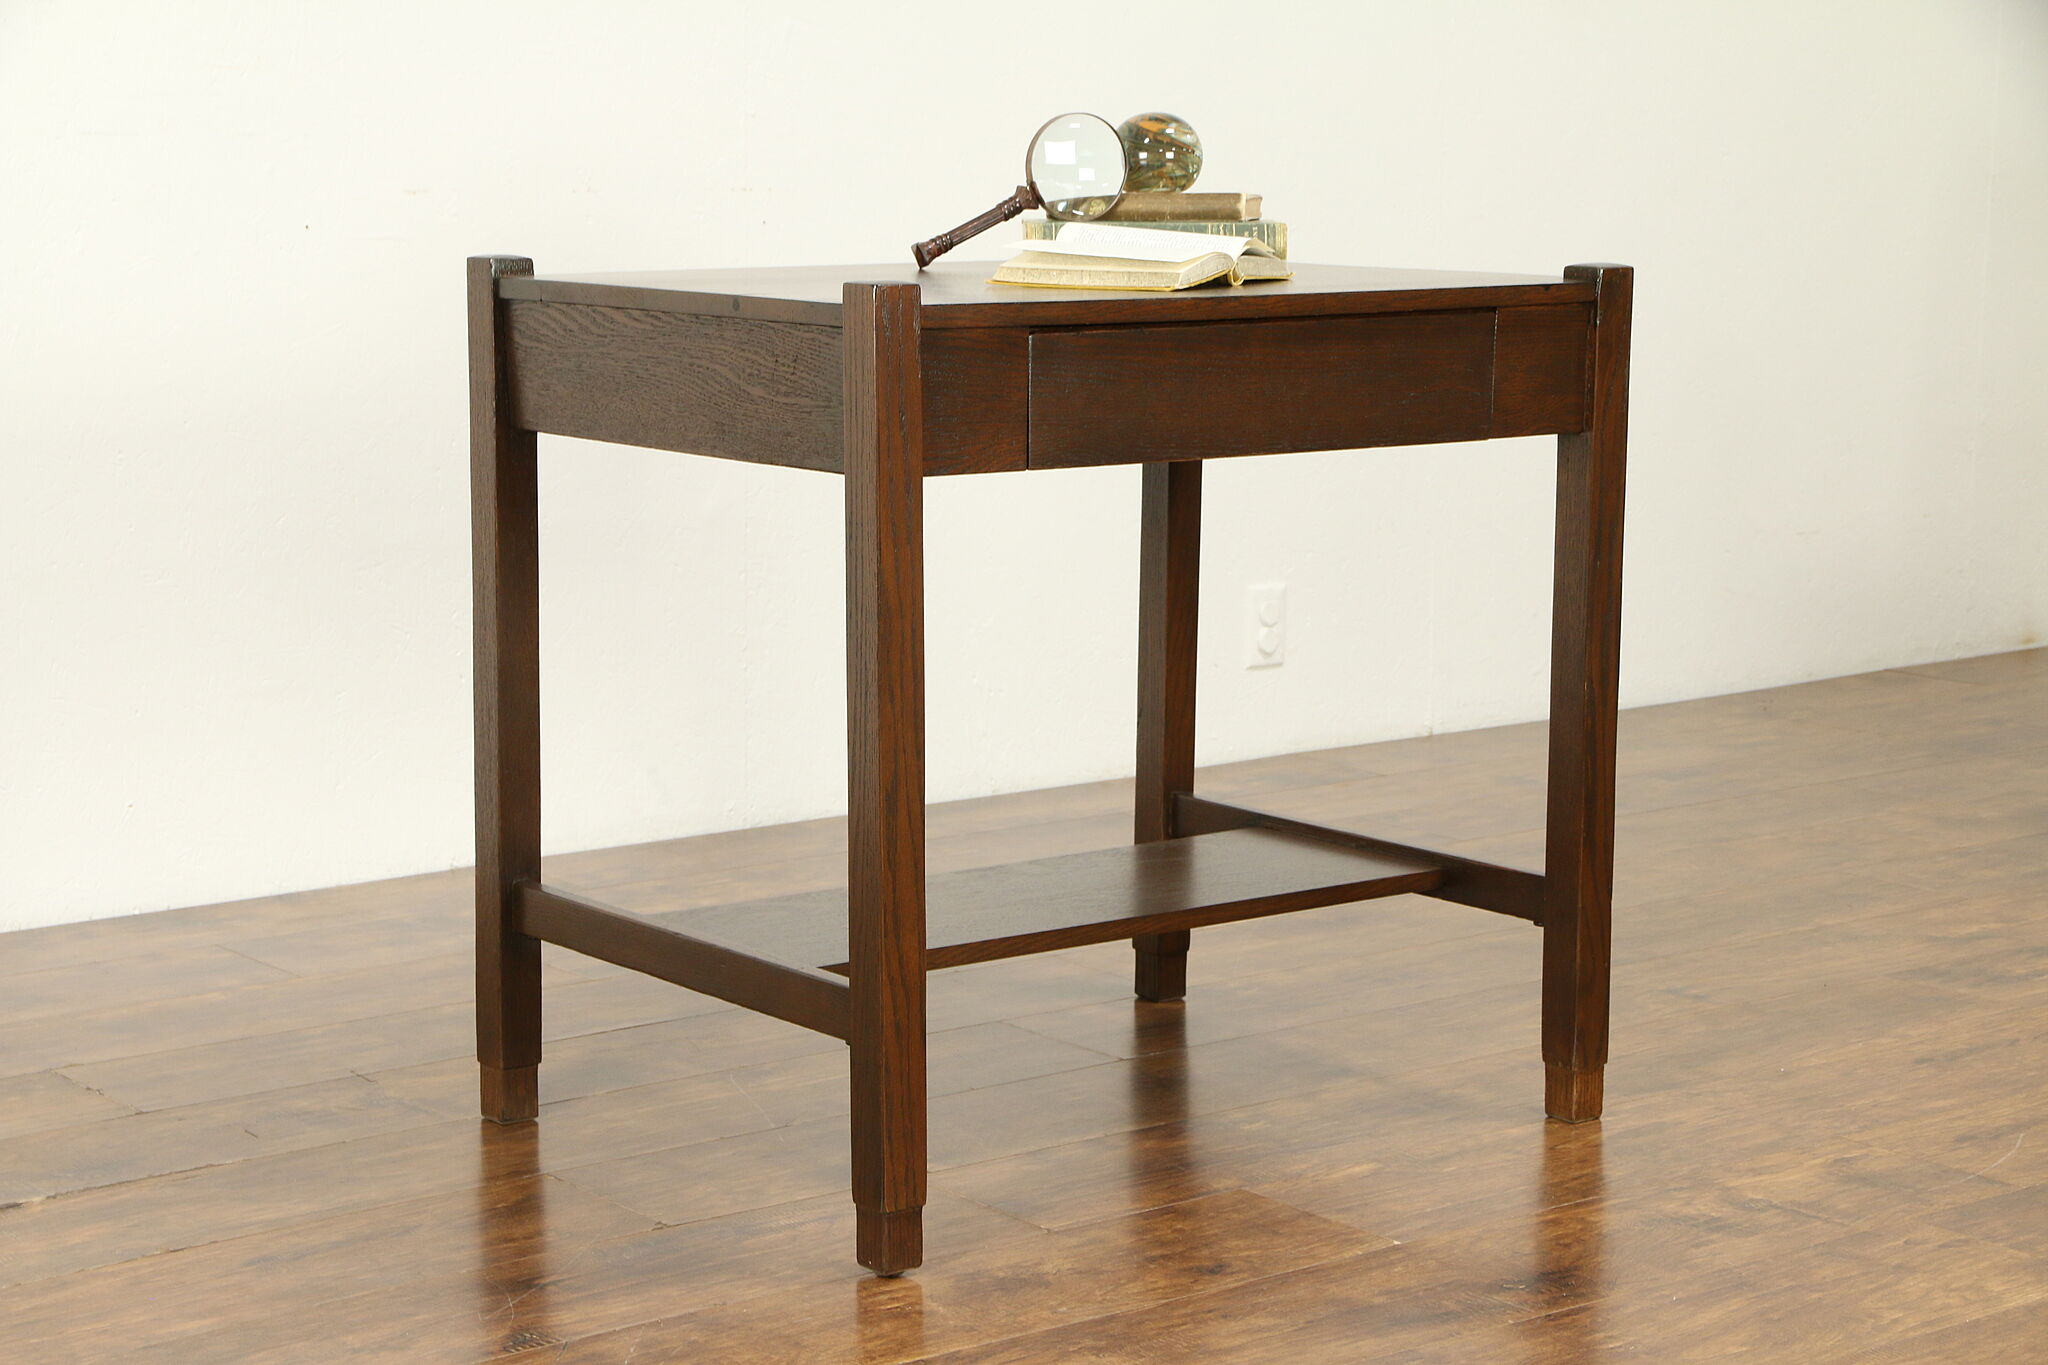 Sold Cadillac Antique Desk Arts Crafts Mission Oak Craftsman Library Table 31882 Harp Gallery Antiques Furniture